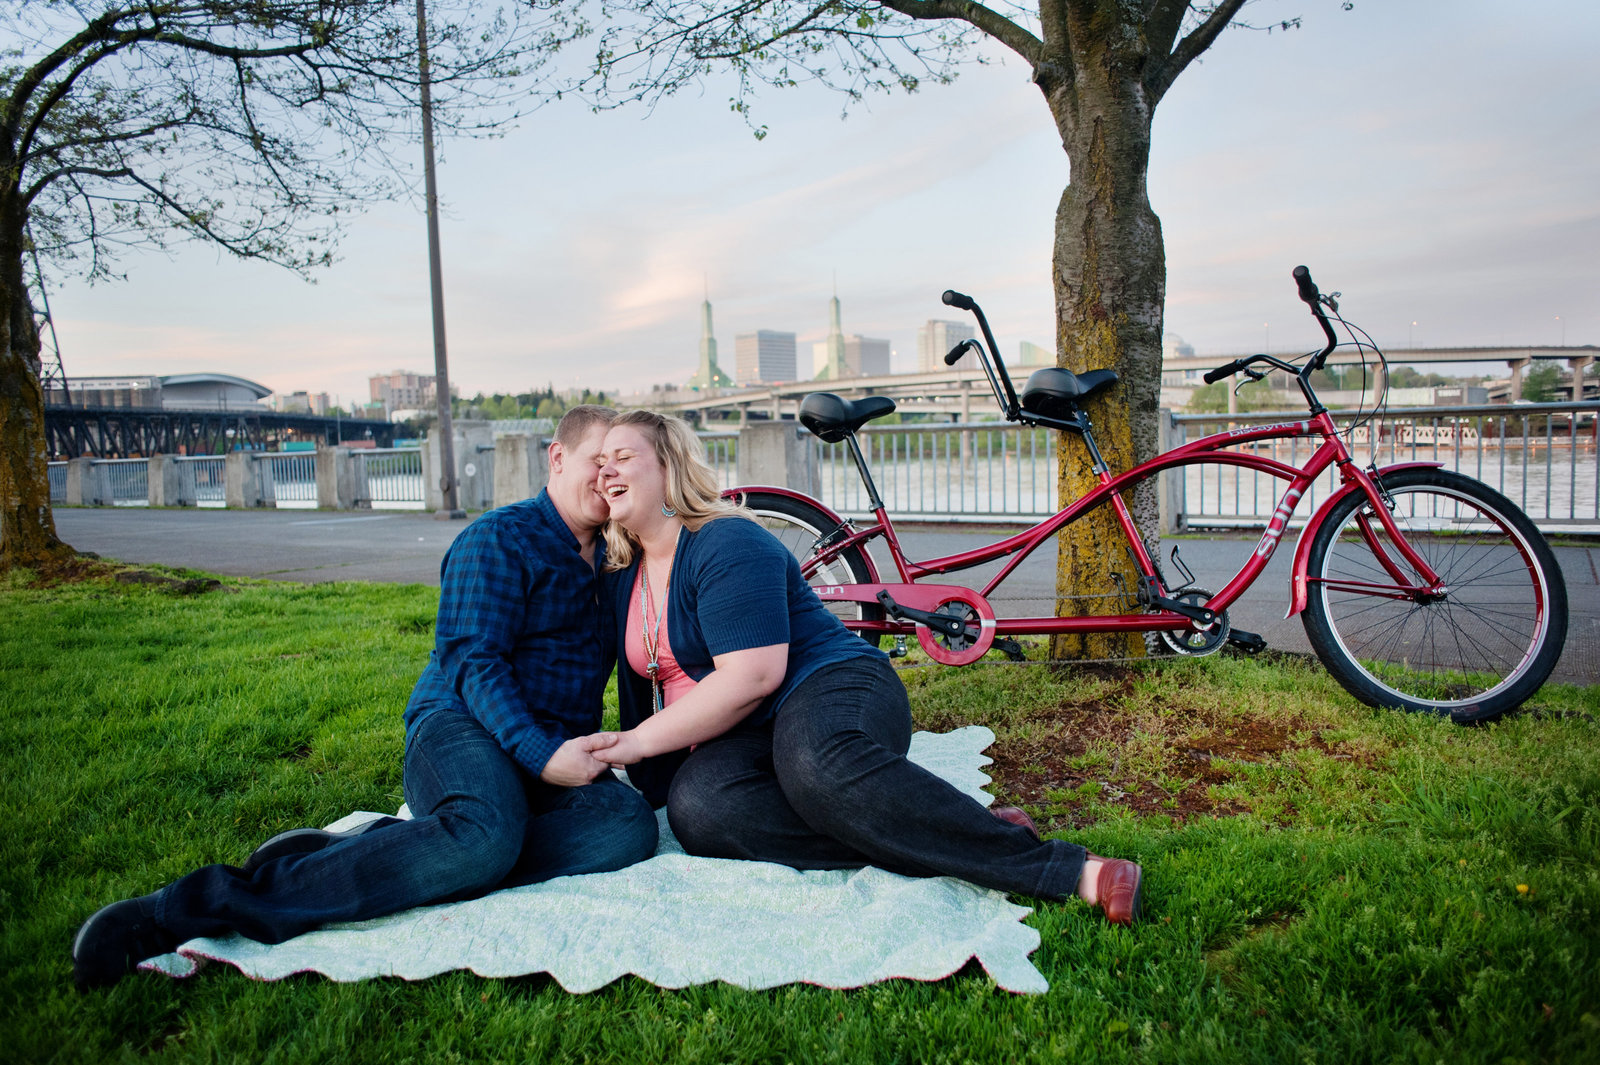 a girl and guy sit on a blanket on the grass with a tandem bike in the background